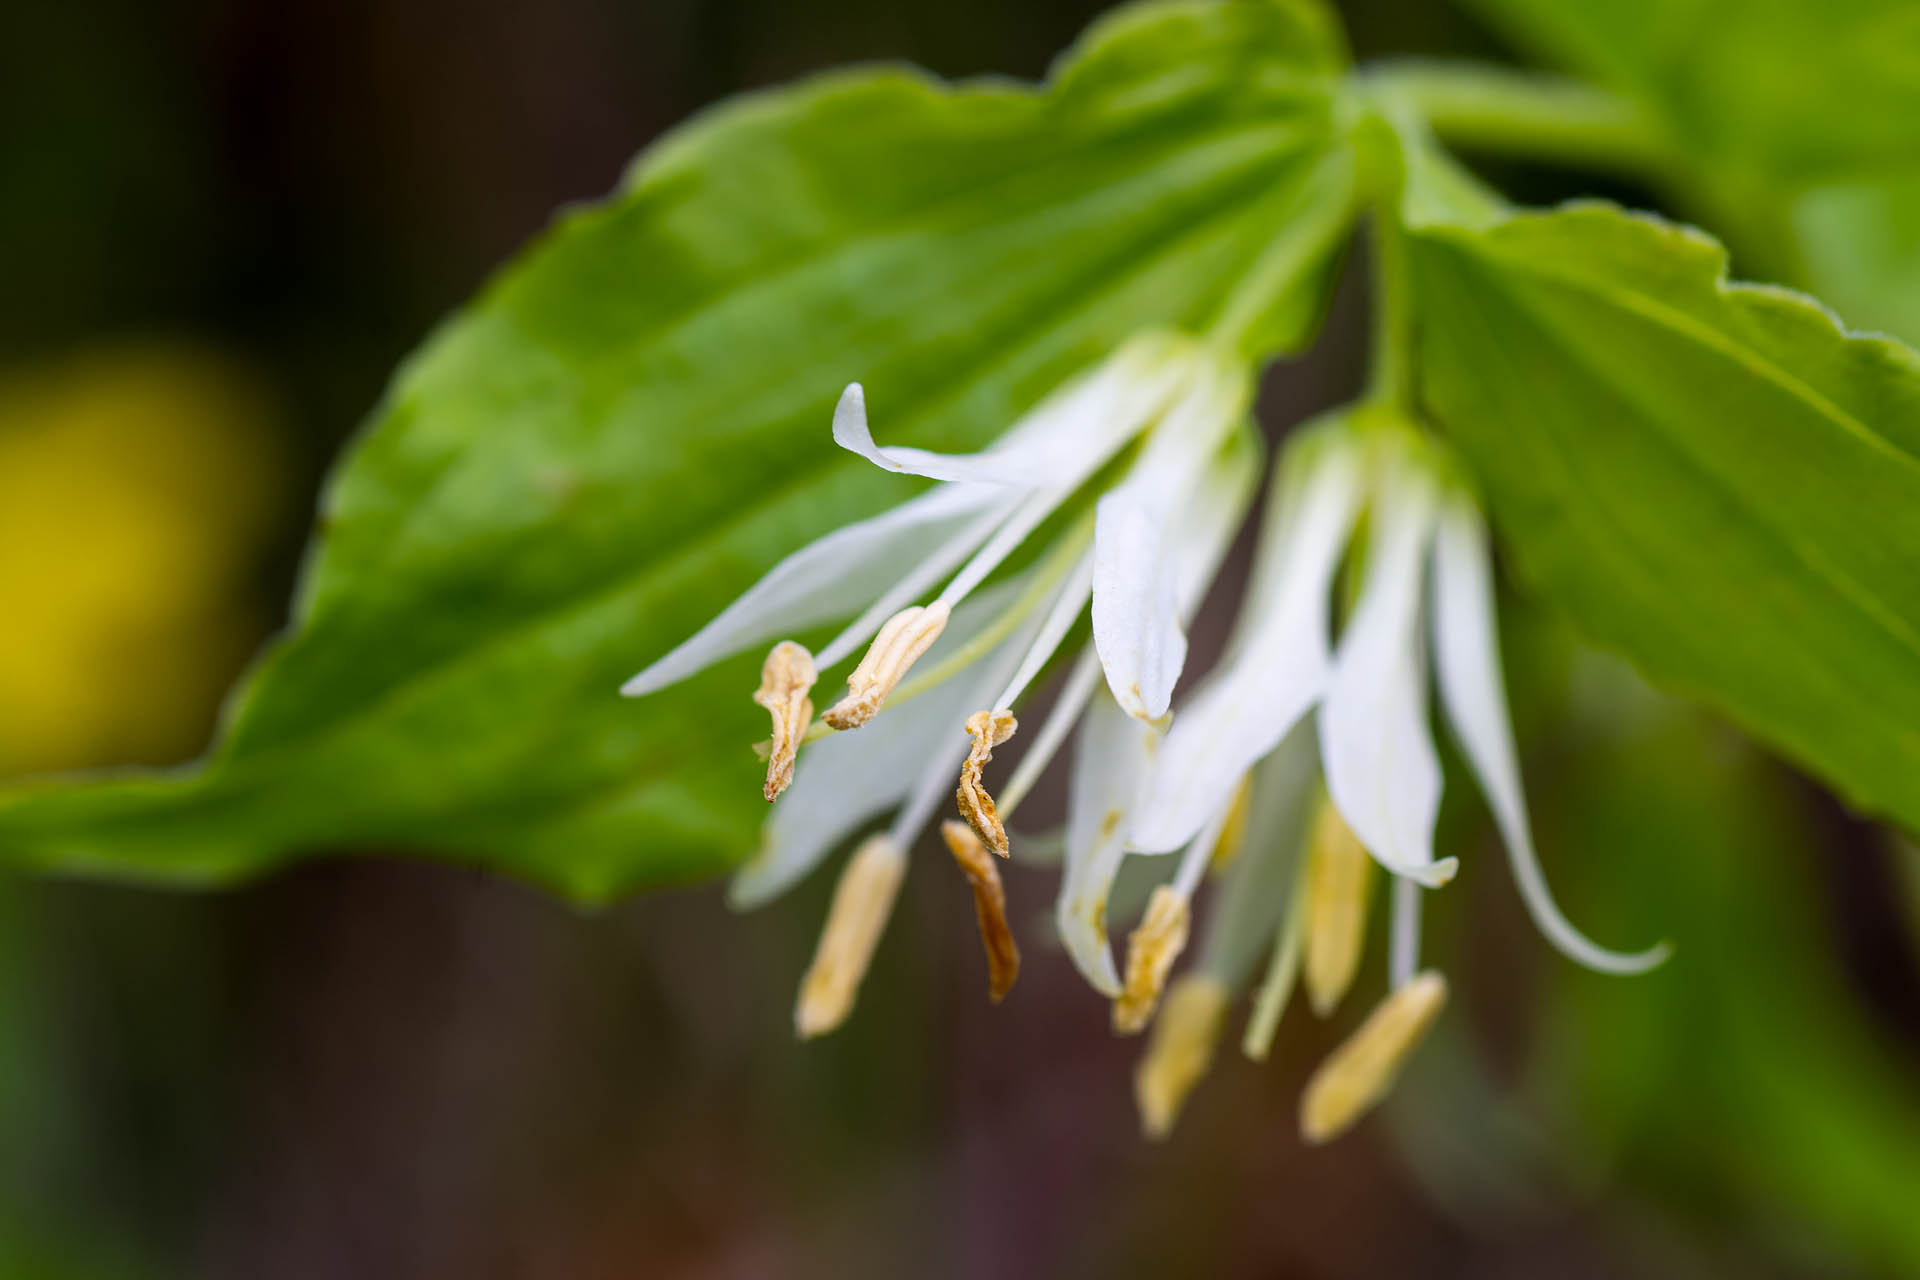 Rough-fruited fairybell